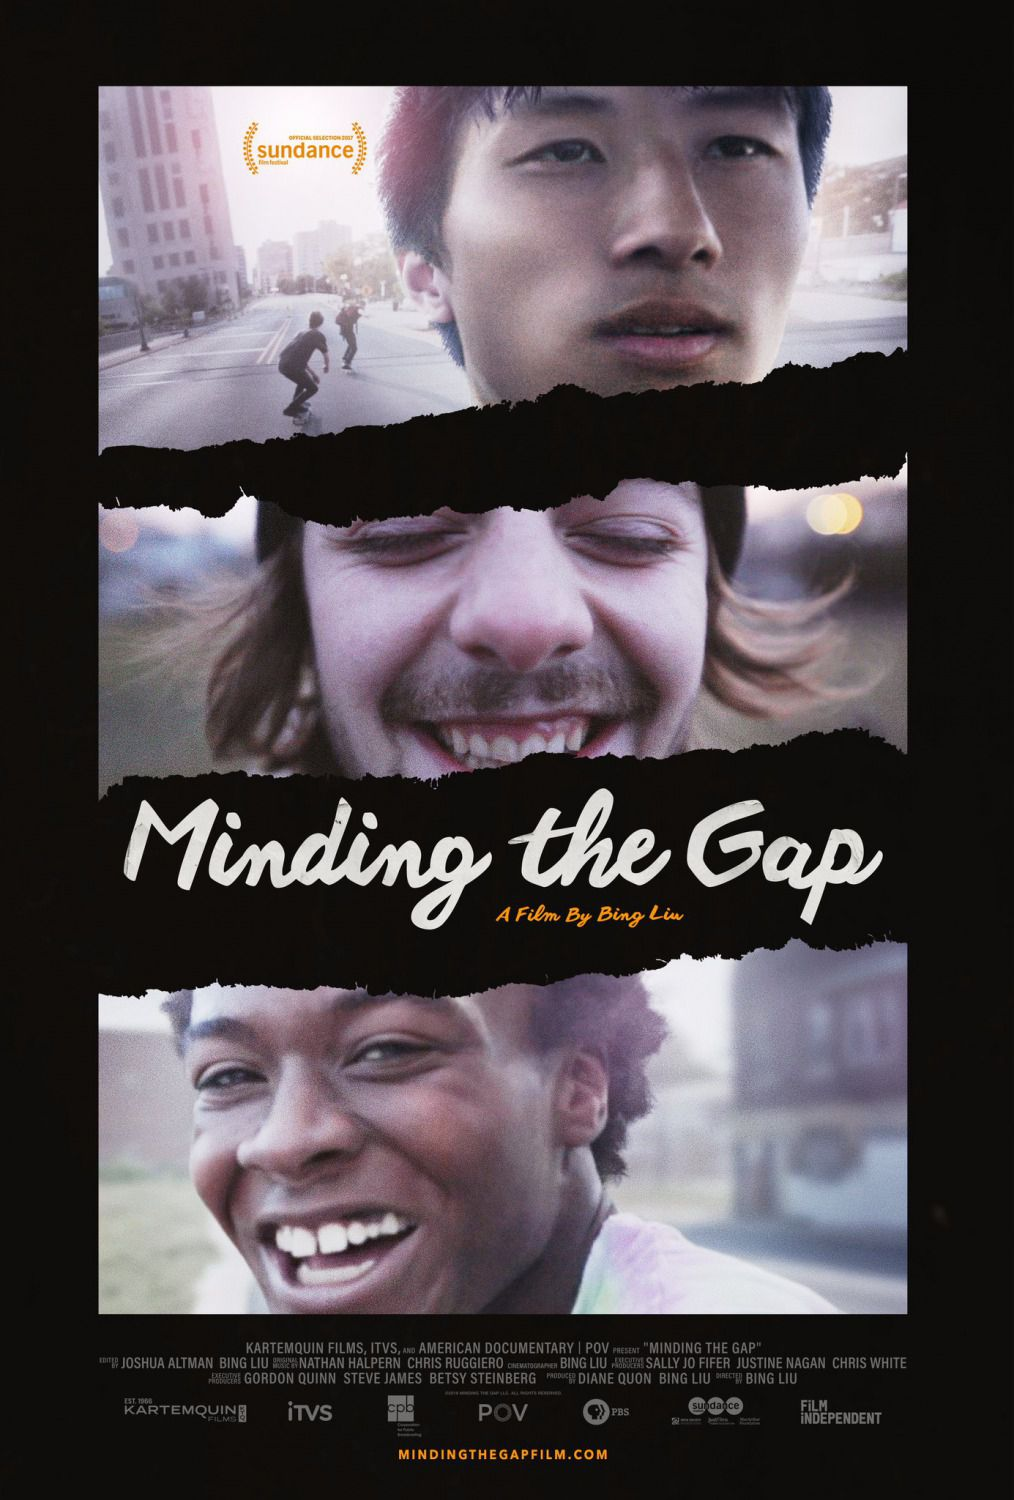 Minding the Gap by Bing Lim - film poster